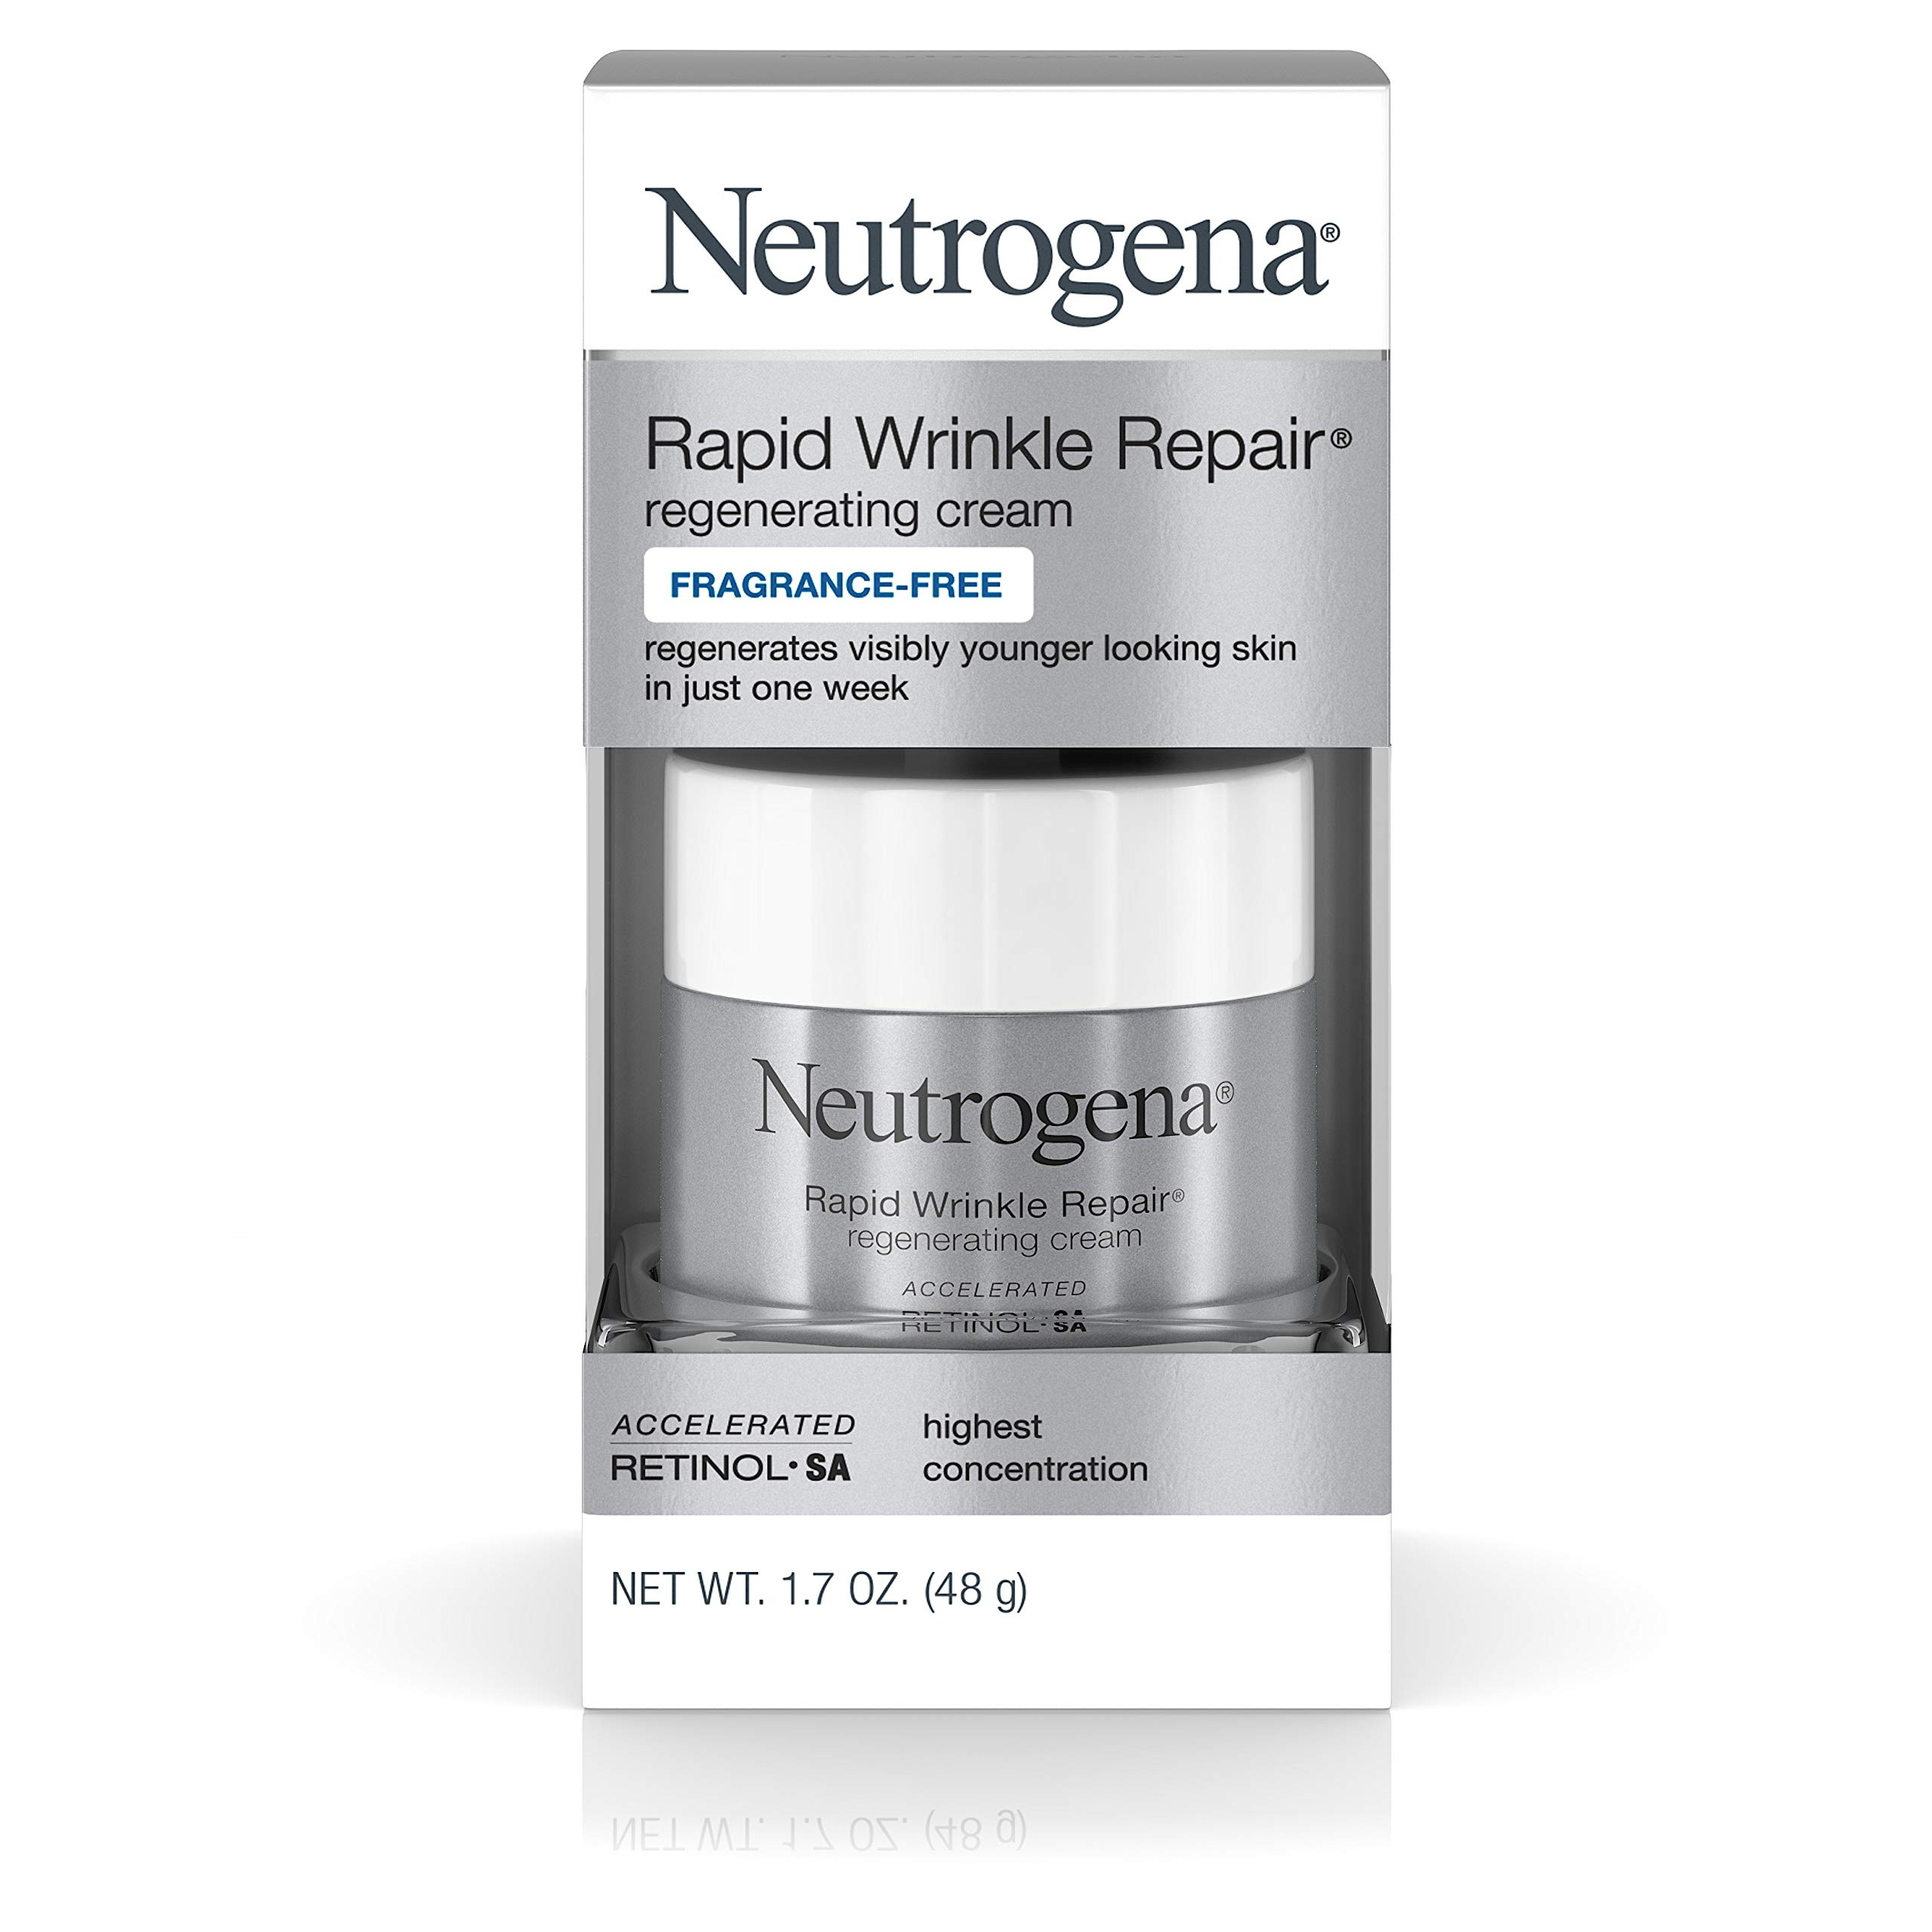 Neutrogena Rapid Wrinkle Repair Hyaluronic Acid Retinol Cream, Anti Wrinkle Cream, Face Moisturizer, Neck Cream & Dark Spot Remover for Face - Day & Night Cream with Hyaluronic Acid & Retinol, 1.7 oz by Neutrogena